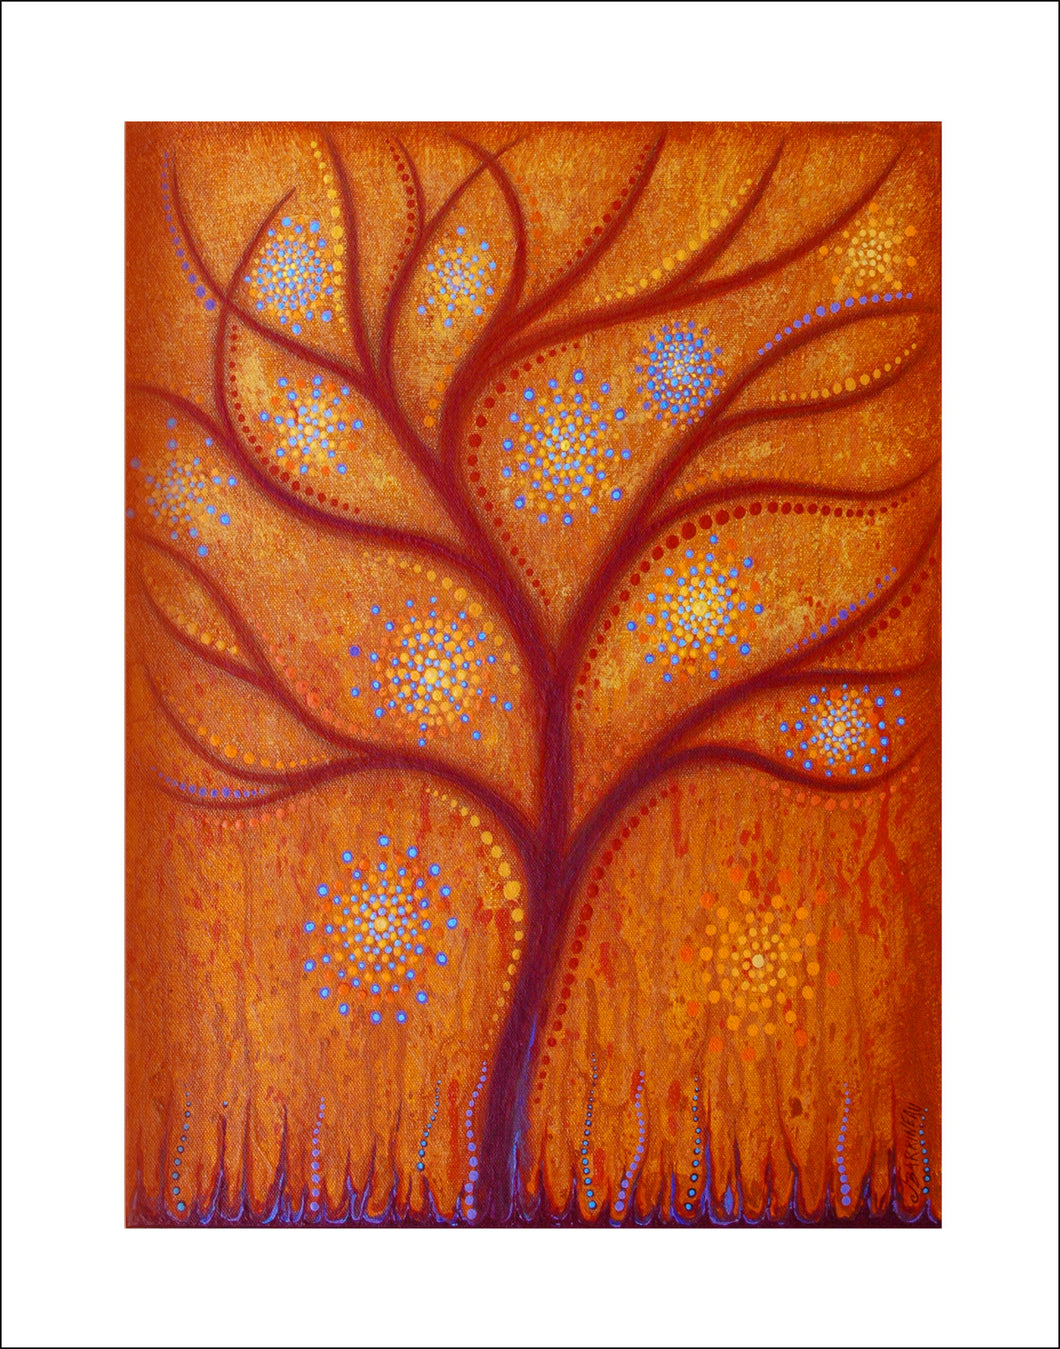 Tangerine Dream Print on Paper